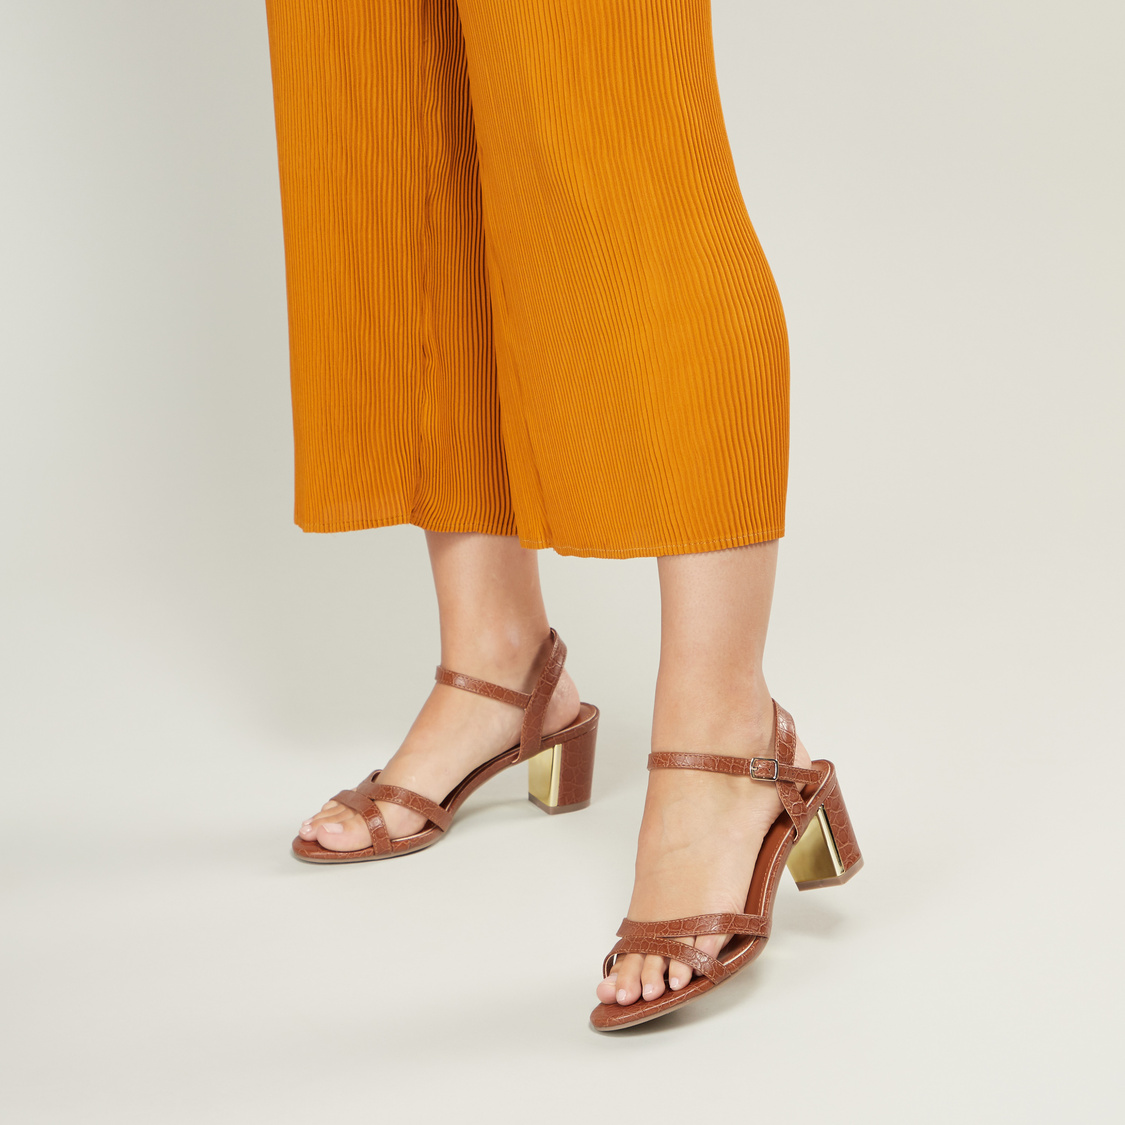 Textured Ankle Strap Sandals with Block Heels and Pin Buckle Closure